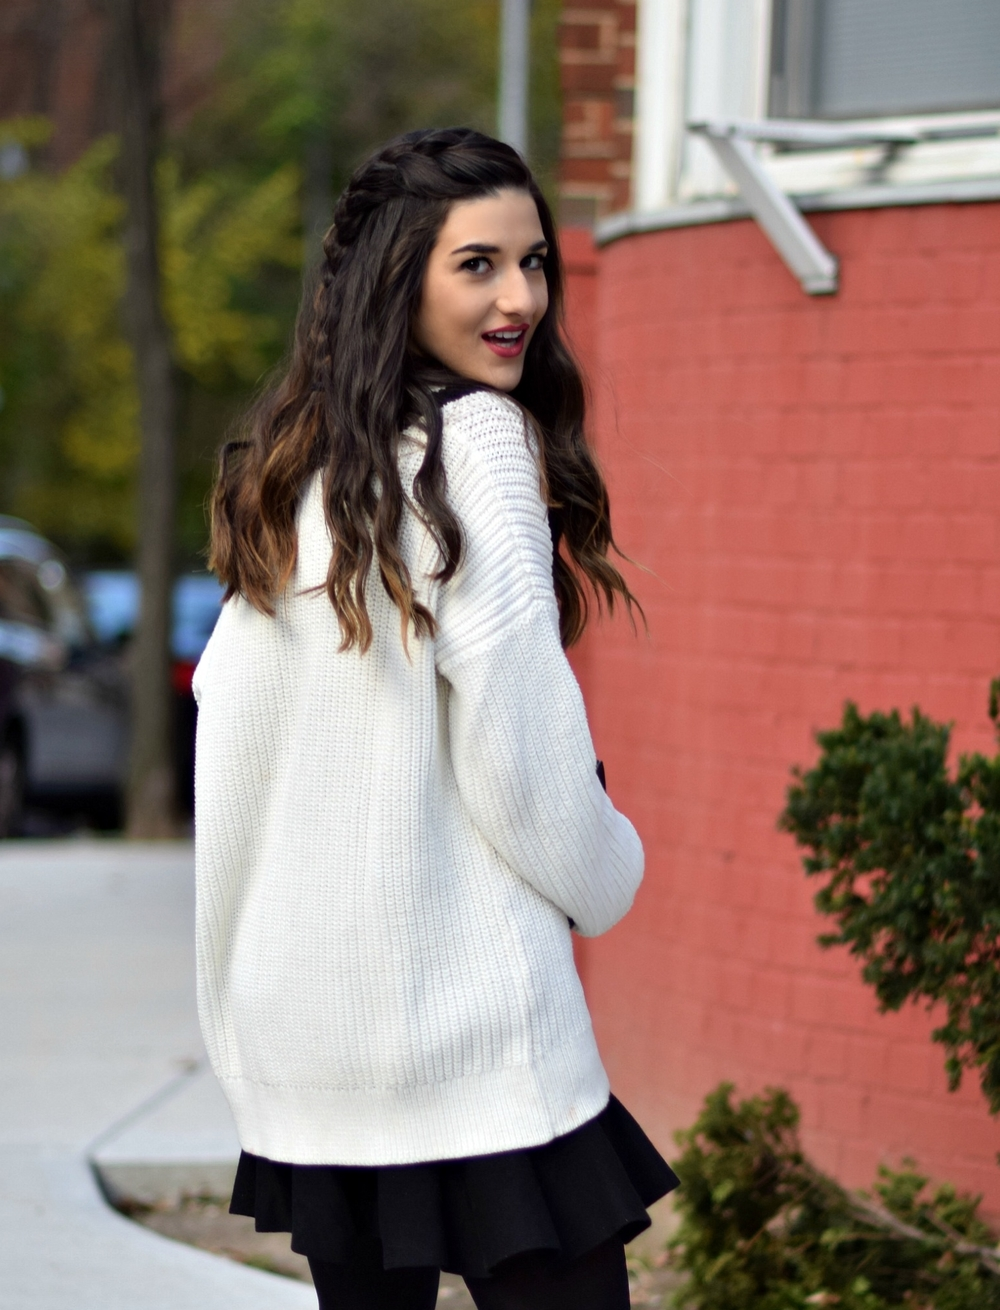 Chunky Varsity Knit Fur Stole Louboutins & Love Fashion Blog Esther Santer NYC Street Style Blogger Sweater Girl Women Photoshoot Model Shoes Black Booties Louise et Cie Nordstrom H&M Hair Swag Outfit OOTD Mini Skirt Neutral Winter Hue Tights New York.jpg